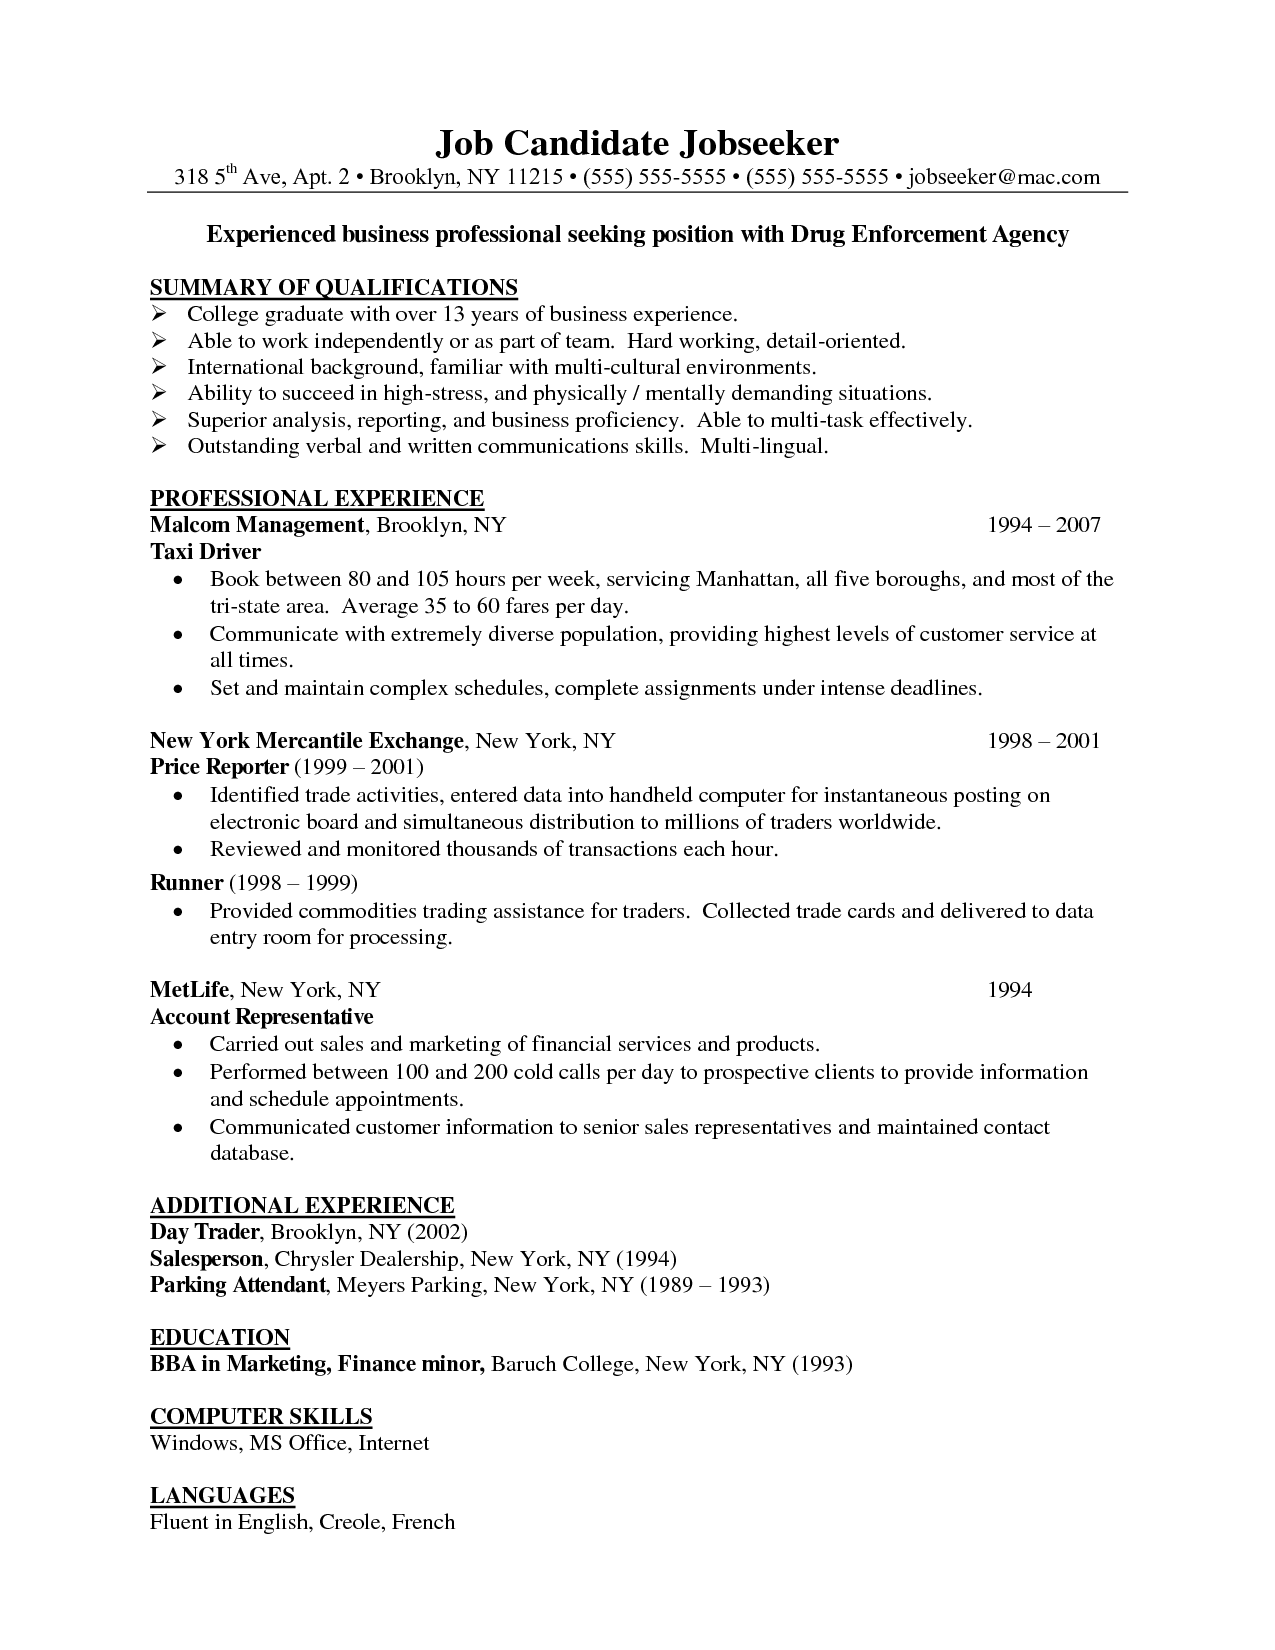 Business Resume Template Unique Sample Business Resume Template  Sample Resume Center  Pinterest